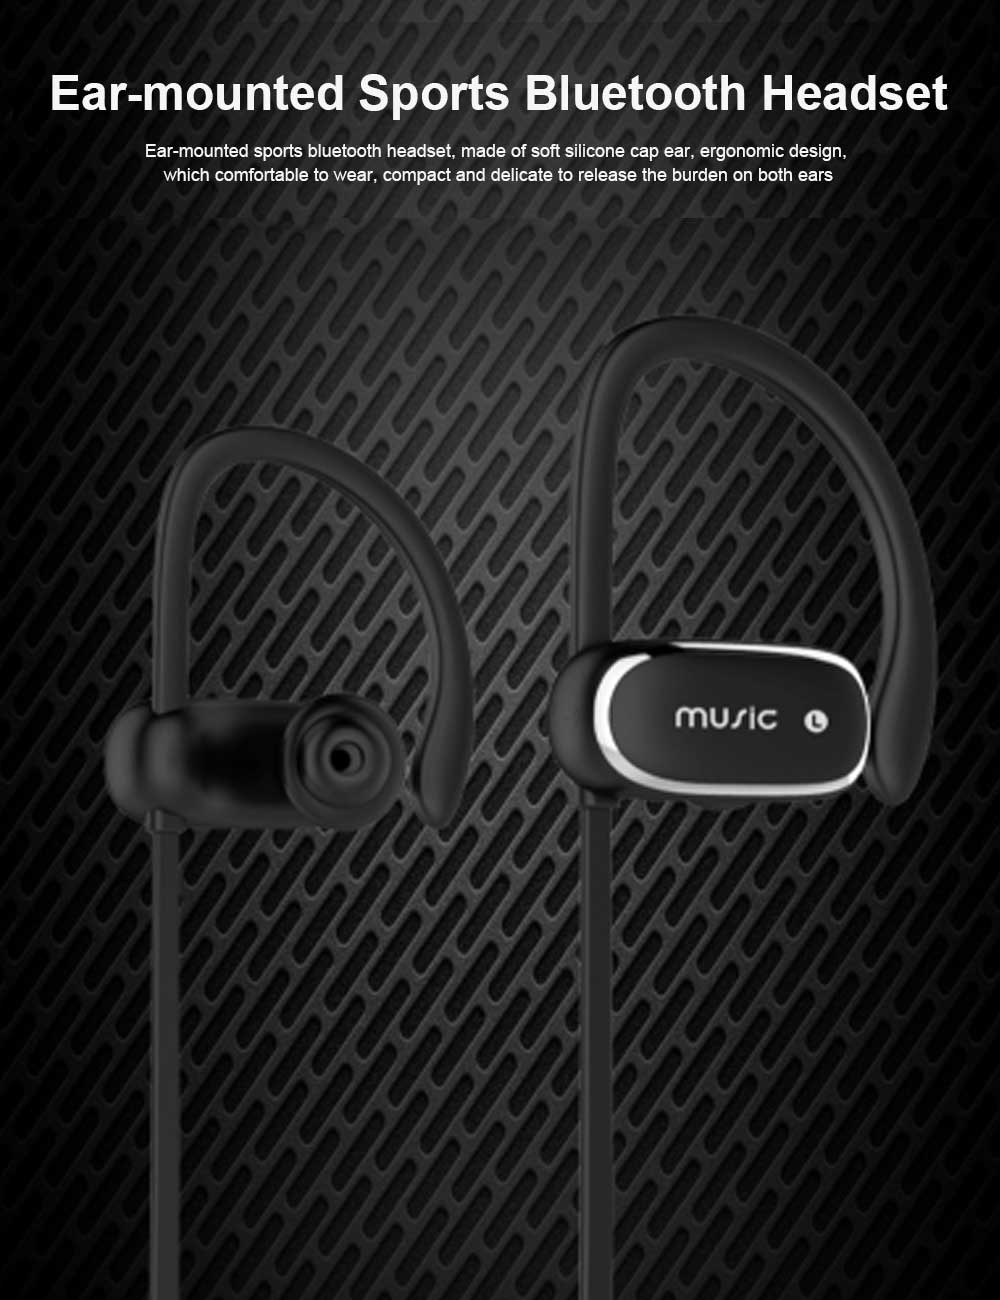 Ear-mounted Sports Headphones, Wireless Bluetooth Headsets Compatible with PC, BOOK, PAD, PHONE 0